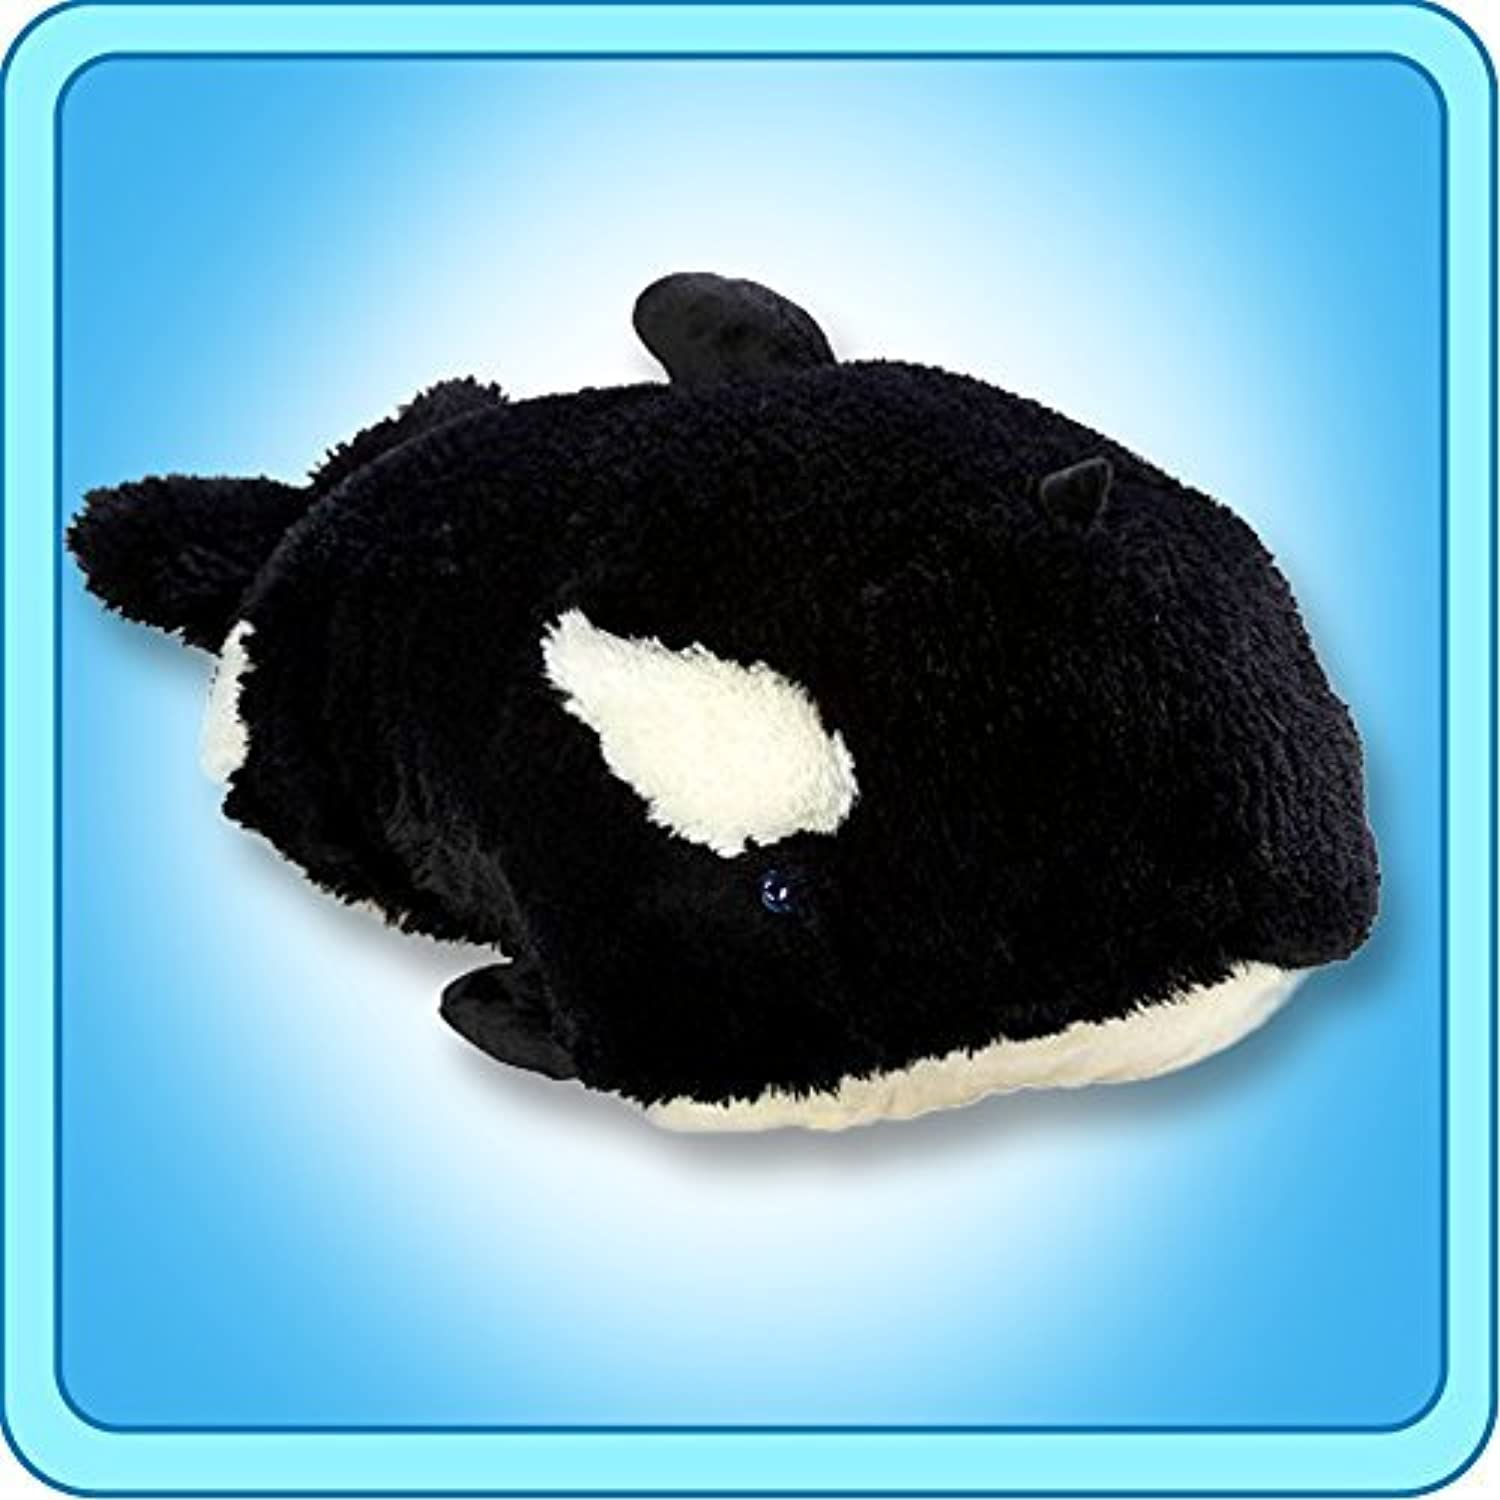 My Pillow Pets Splashy Whale - Large (Black And White) by Pillow Pets